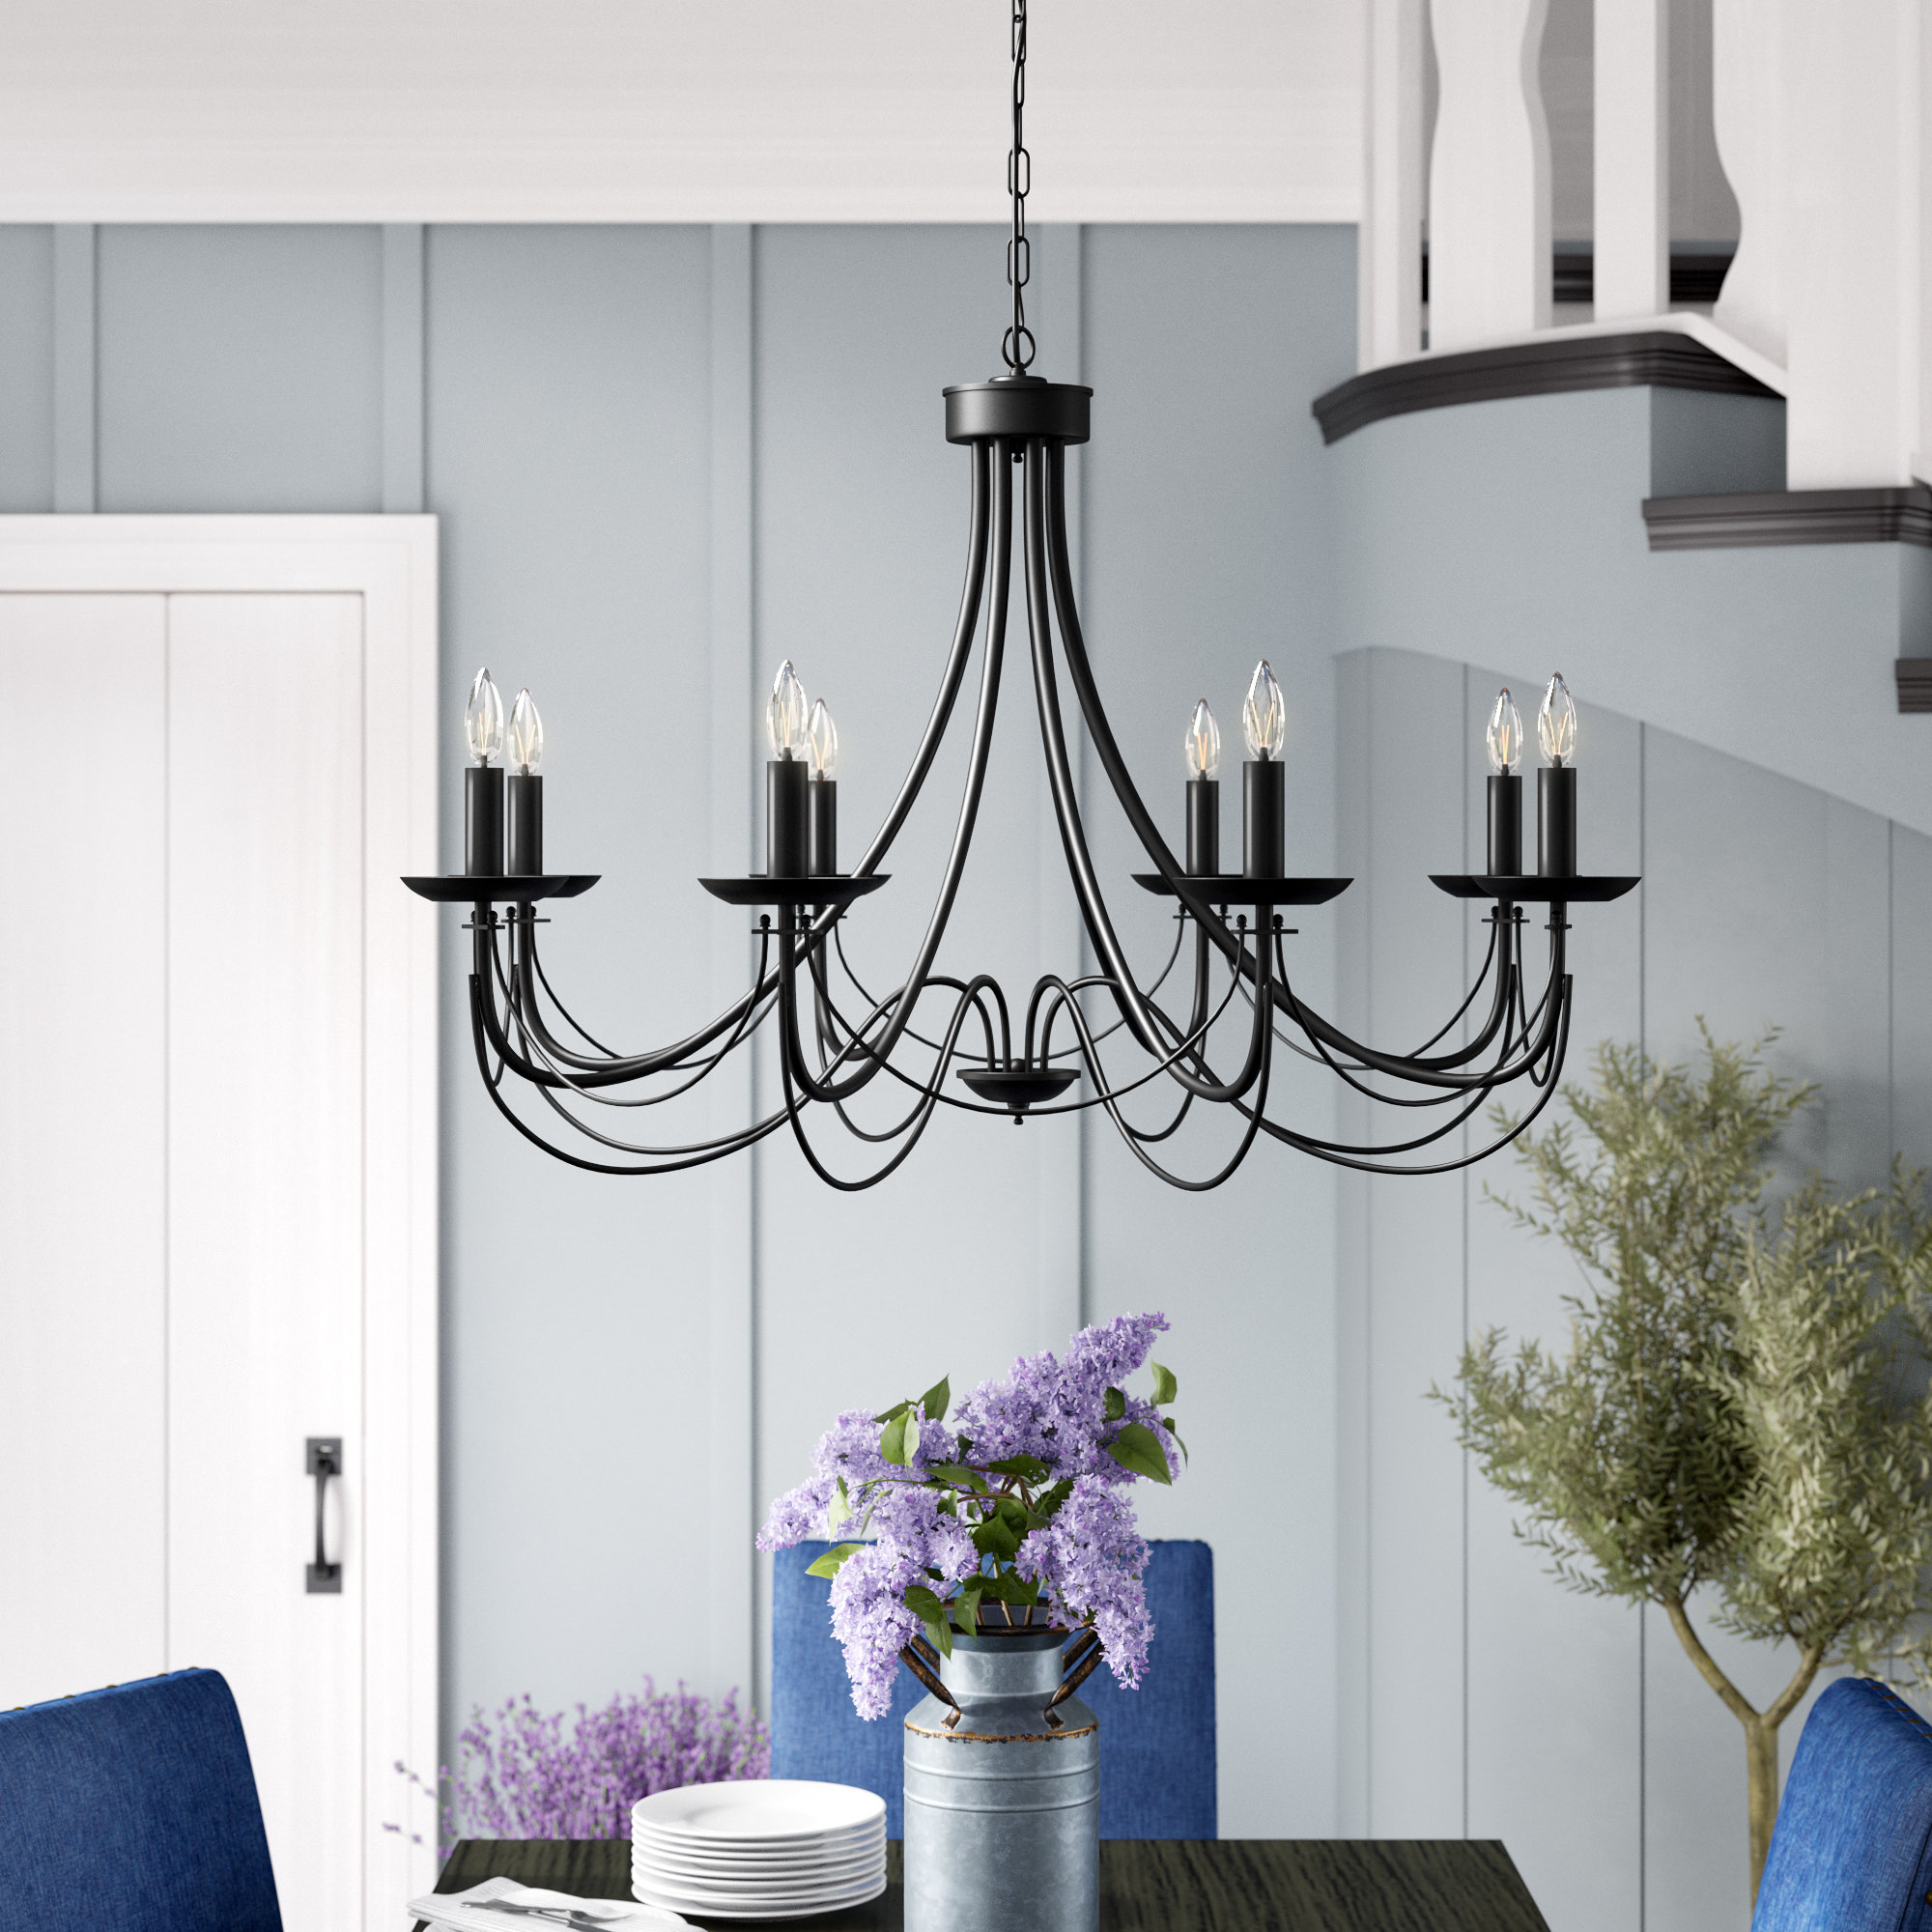 Ryckman Iron 8 Light Candle Style Chandelier Within Well Liked Watford 6 Light Candle Style Chandeliers (Gallery 19 of 20)